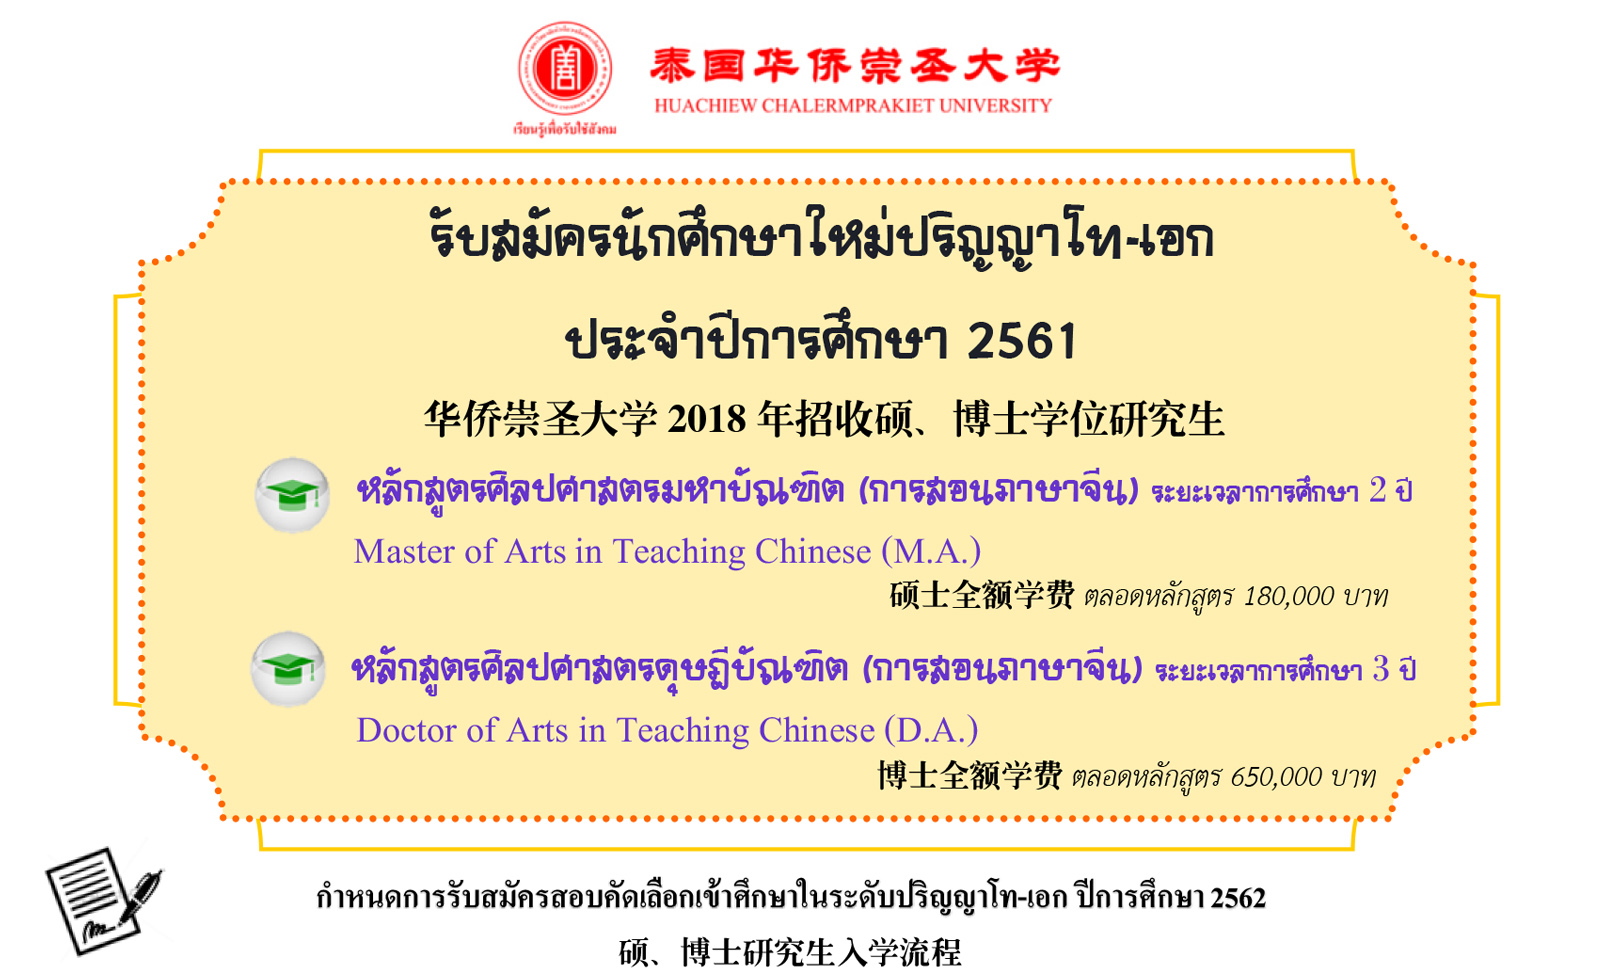 Graduate Program in Teaching Chinese 2019